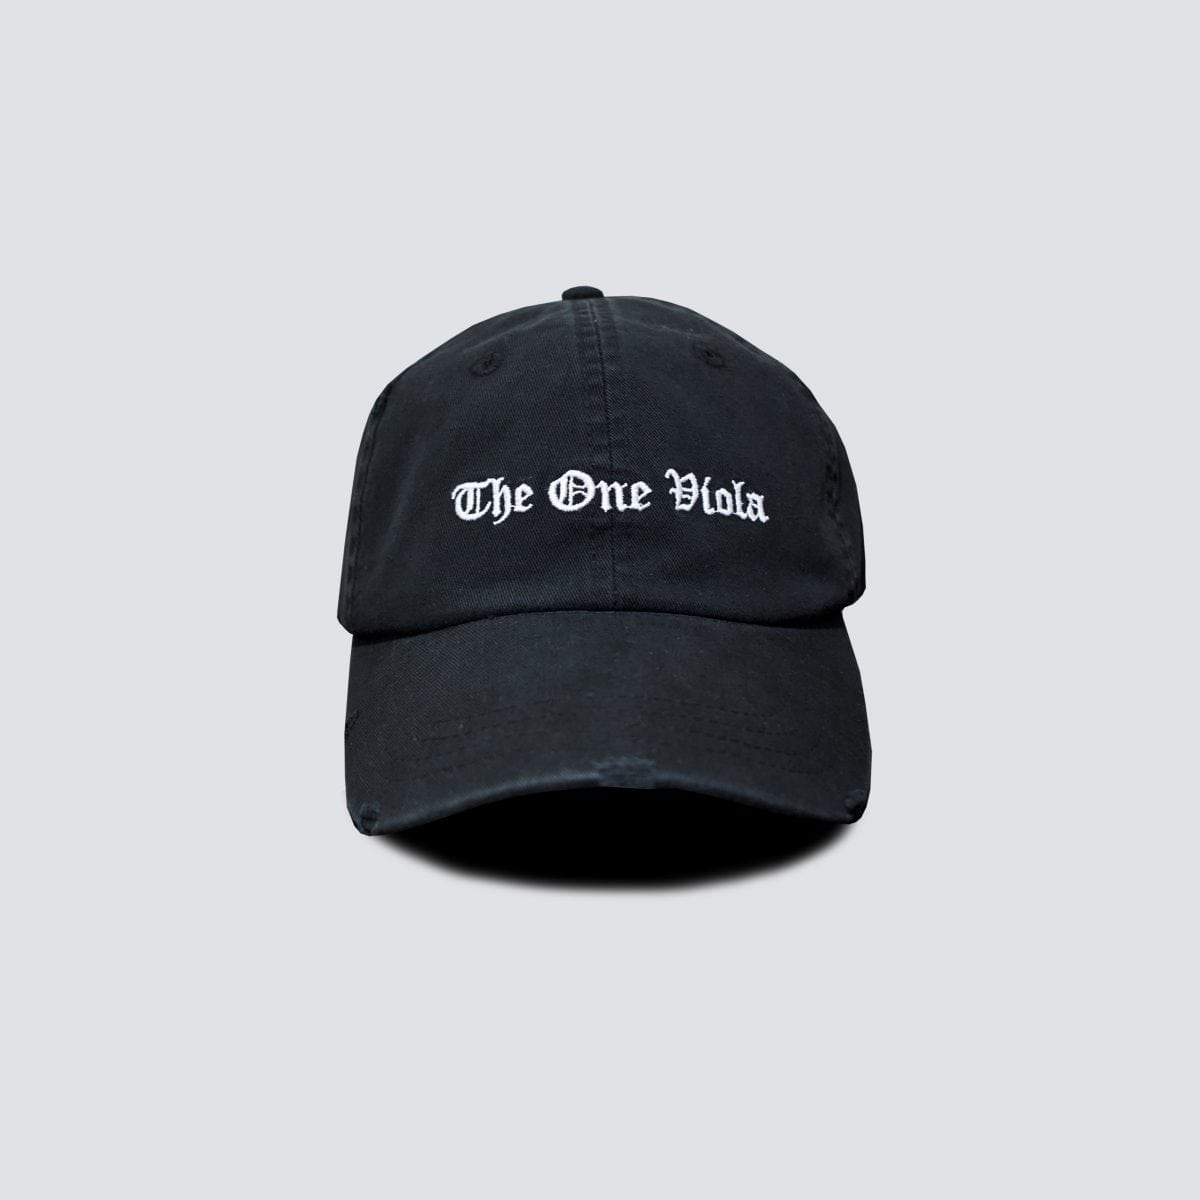 black distressed dad cap hat